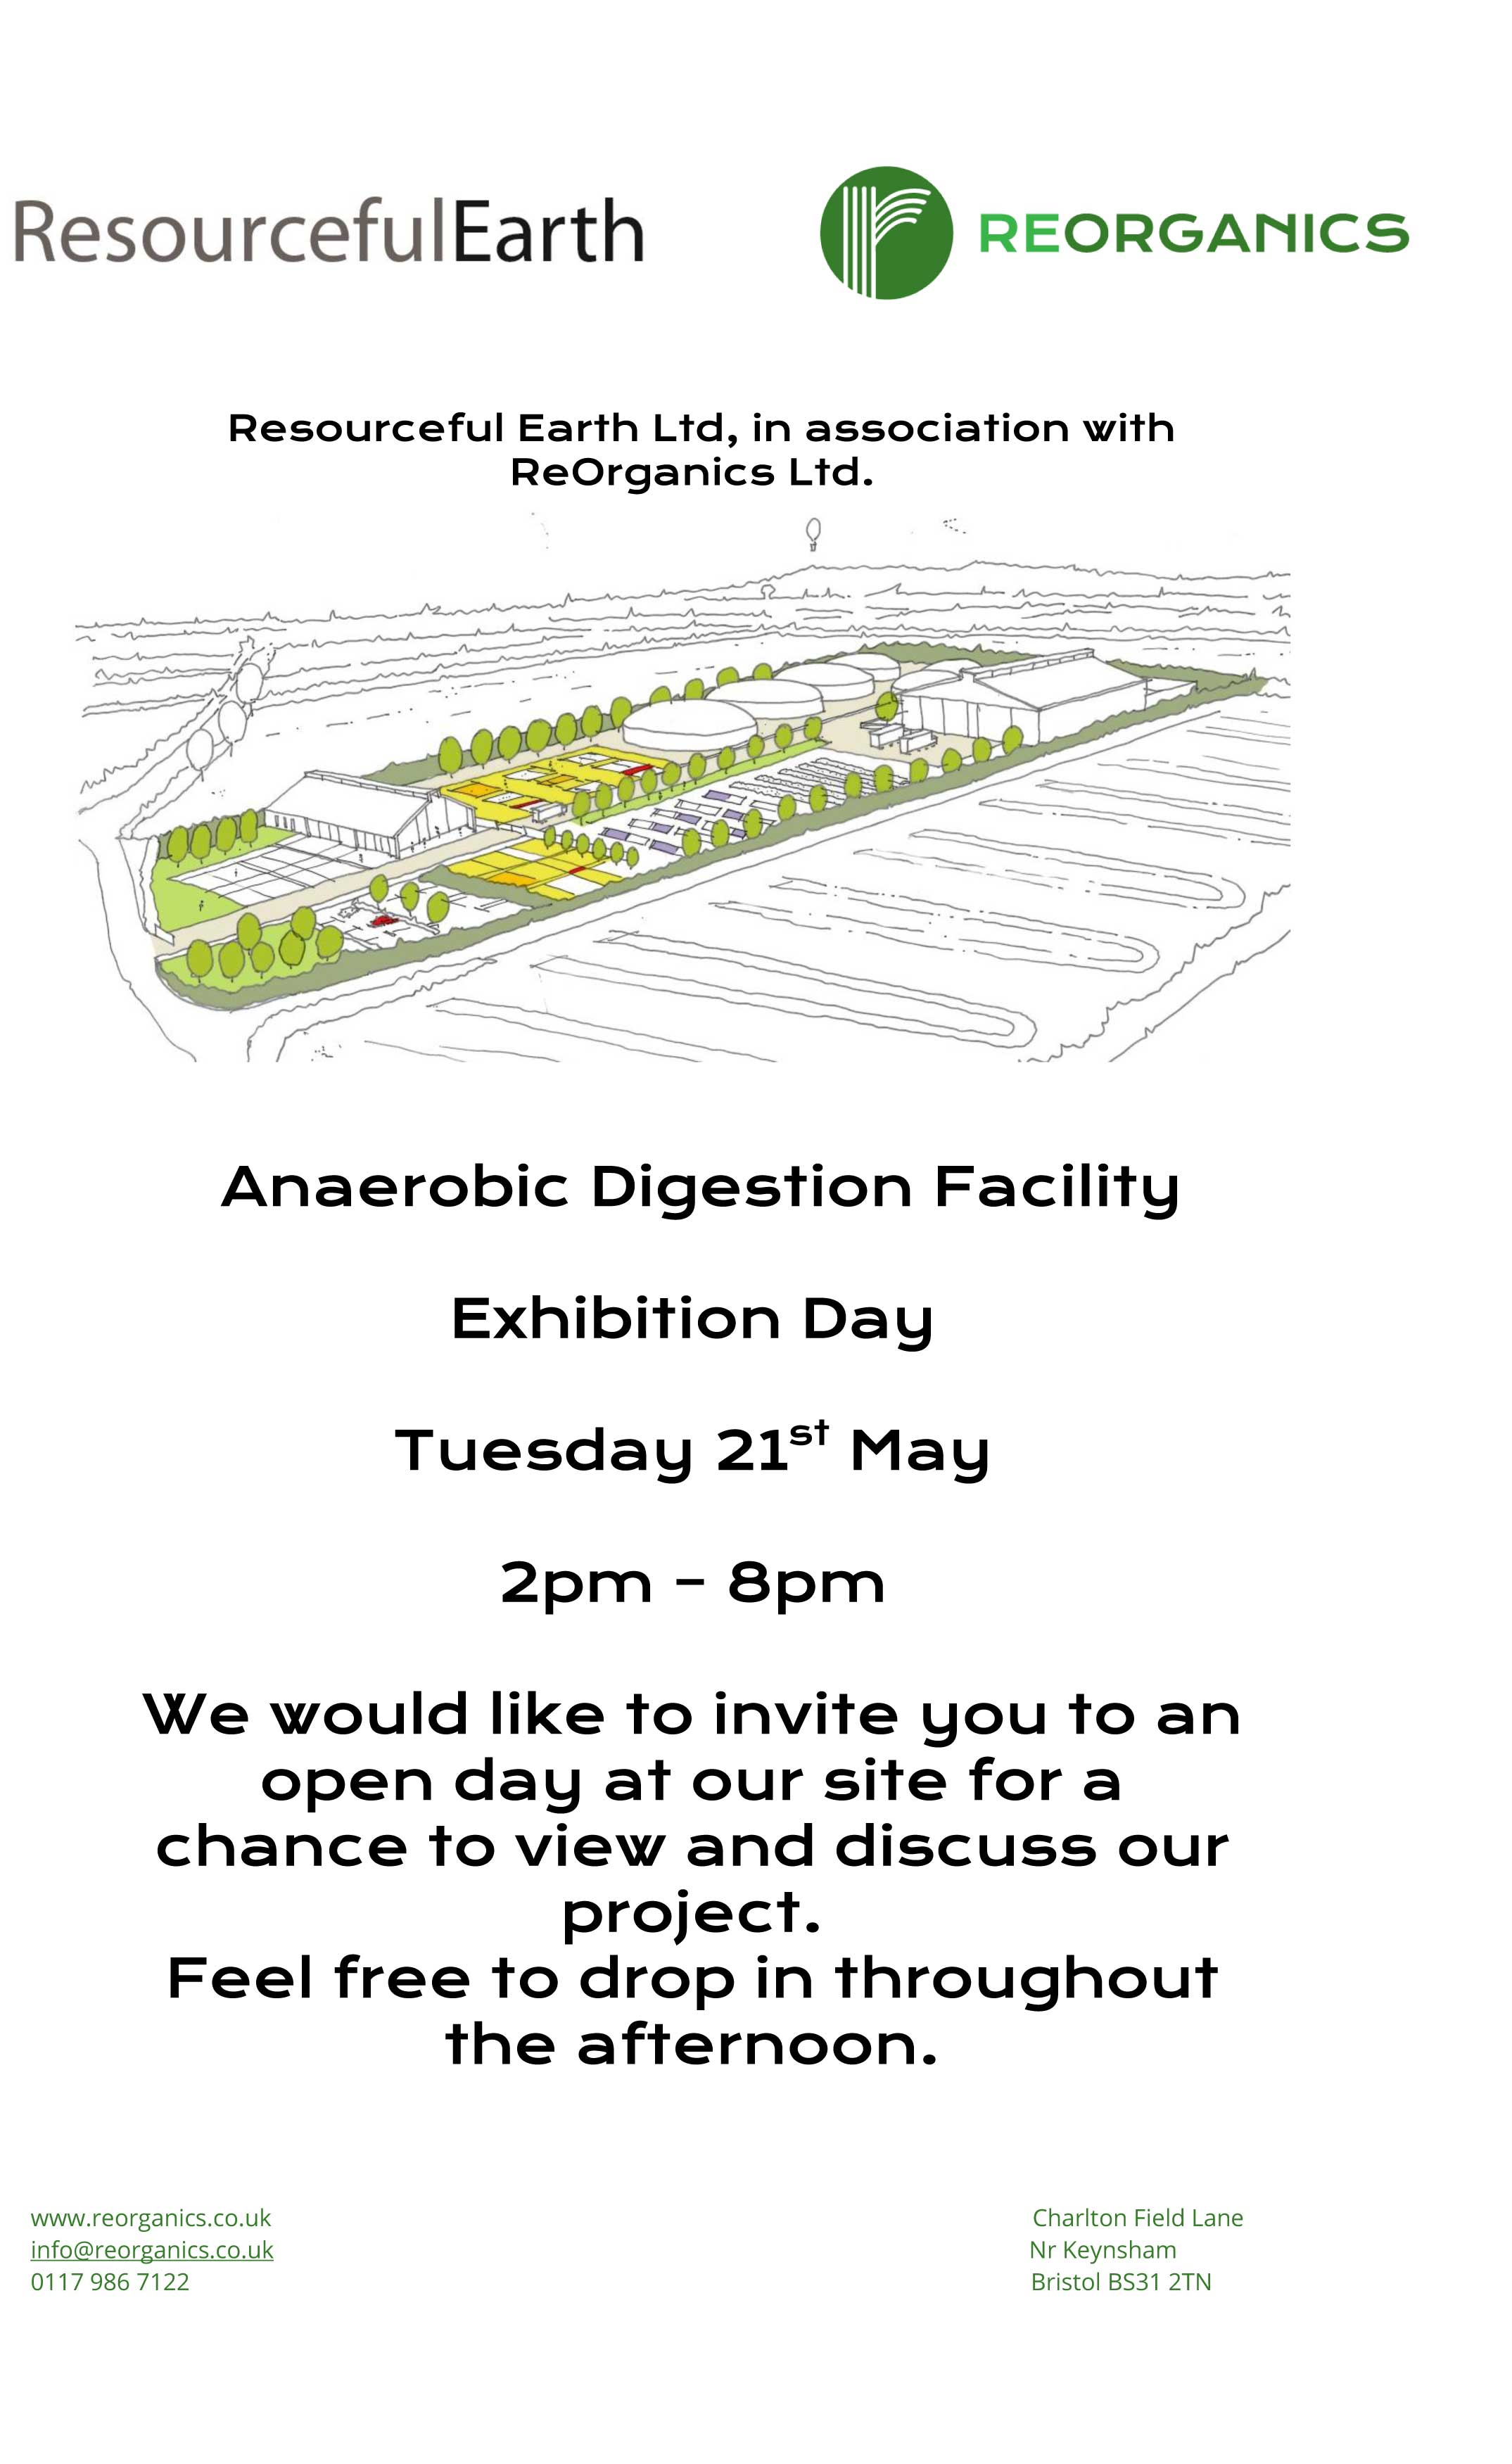 Energy group transition keynsham invitation for exhibition day 21st may 2013 stopboris Choice Image